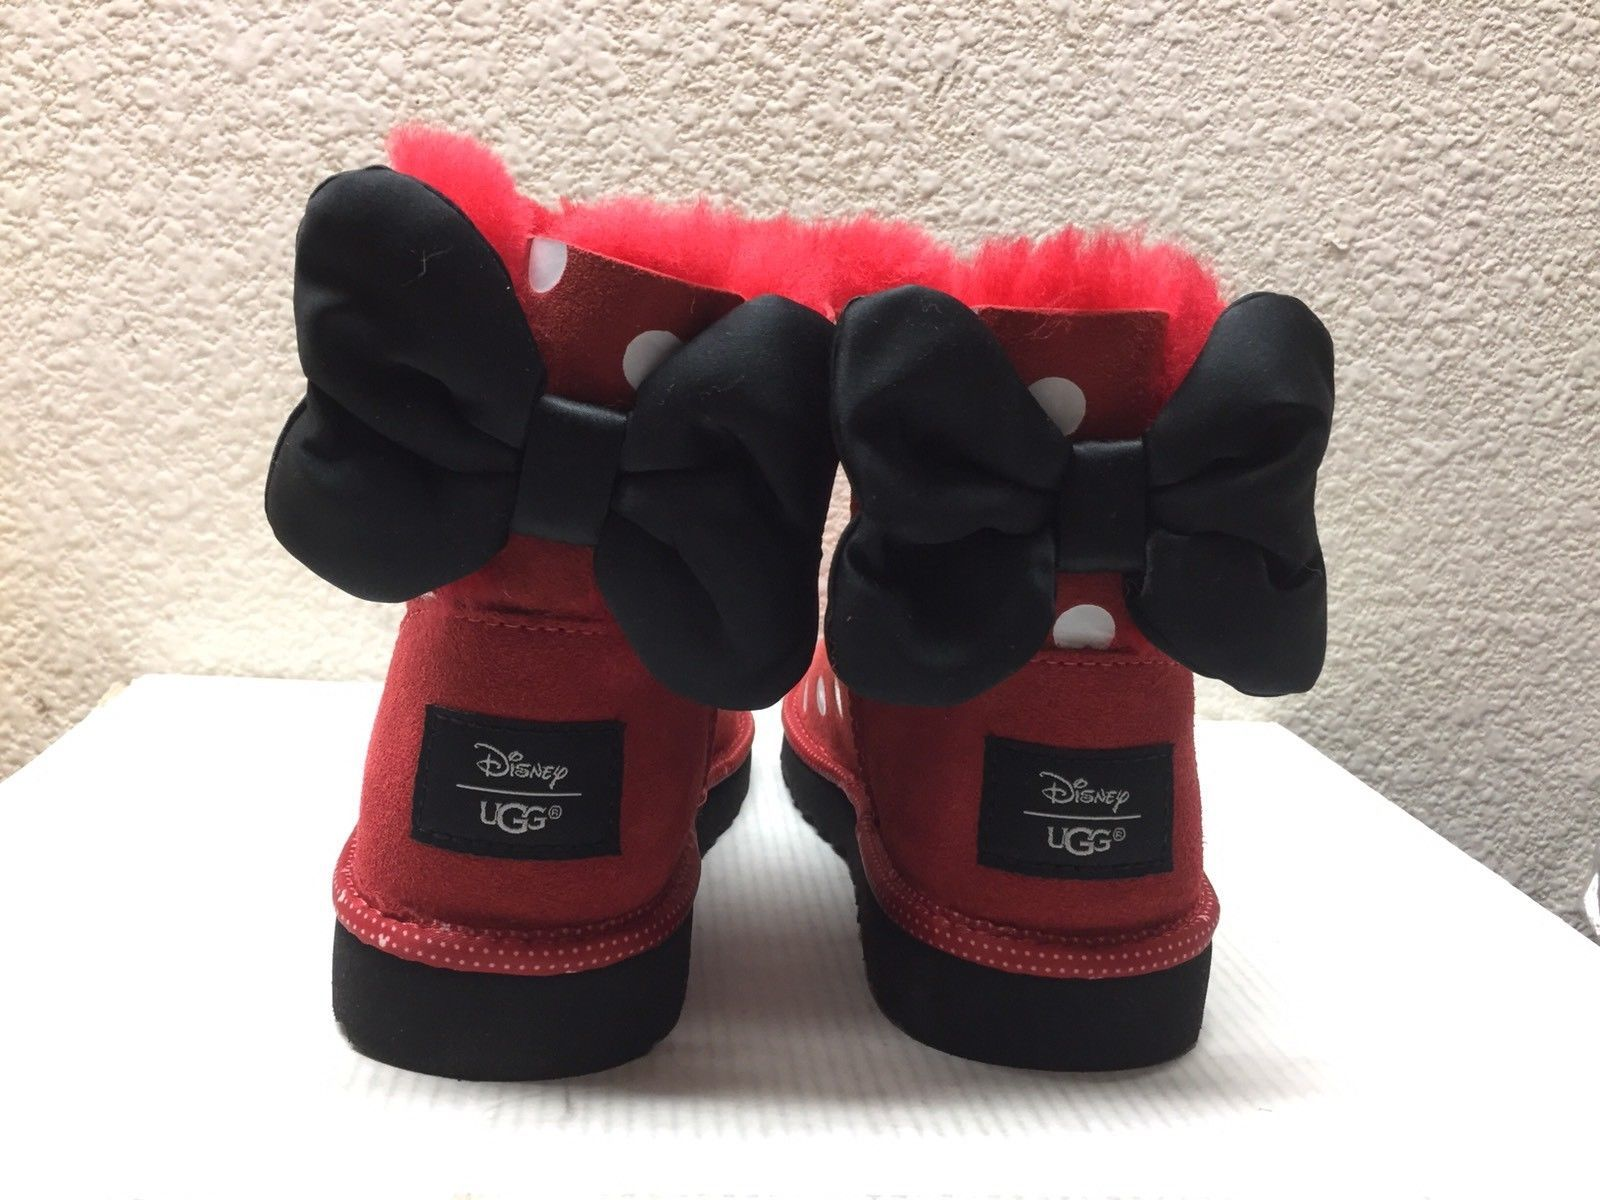 Primary image for UGG DISNEY MINNIE POLKA DOTS RED SWEETIE BOW YOUTH/ KID US 4 - US6 /EU37 /UK4.5